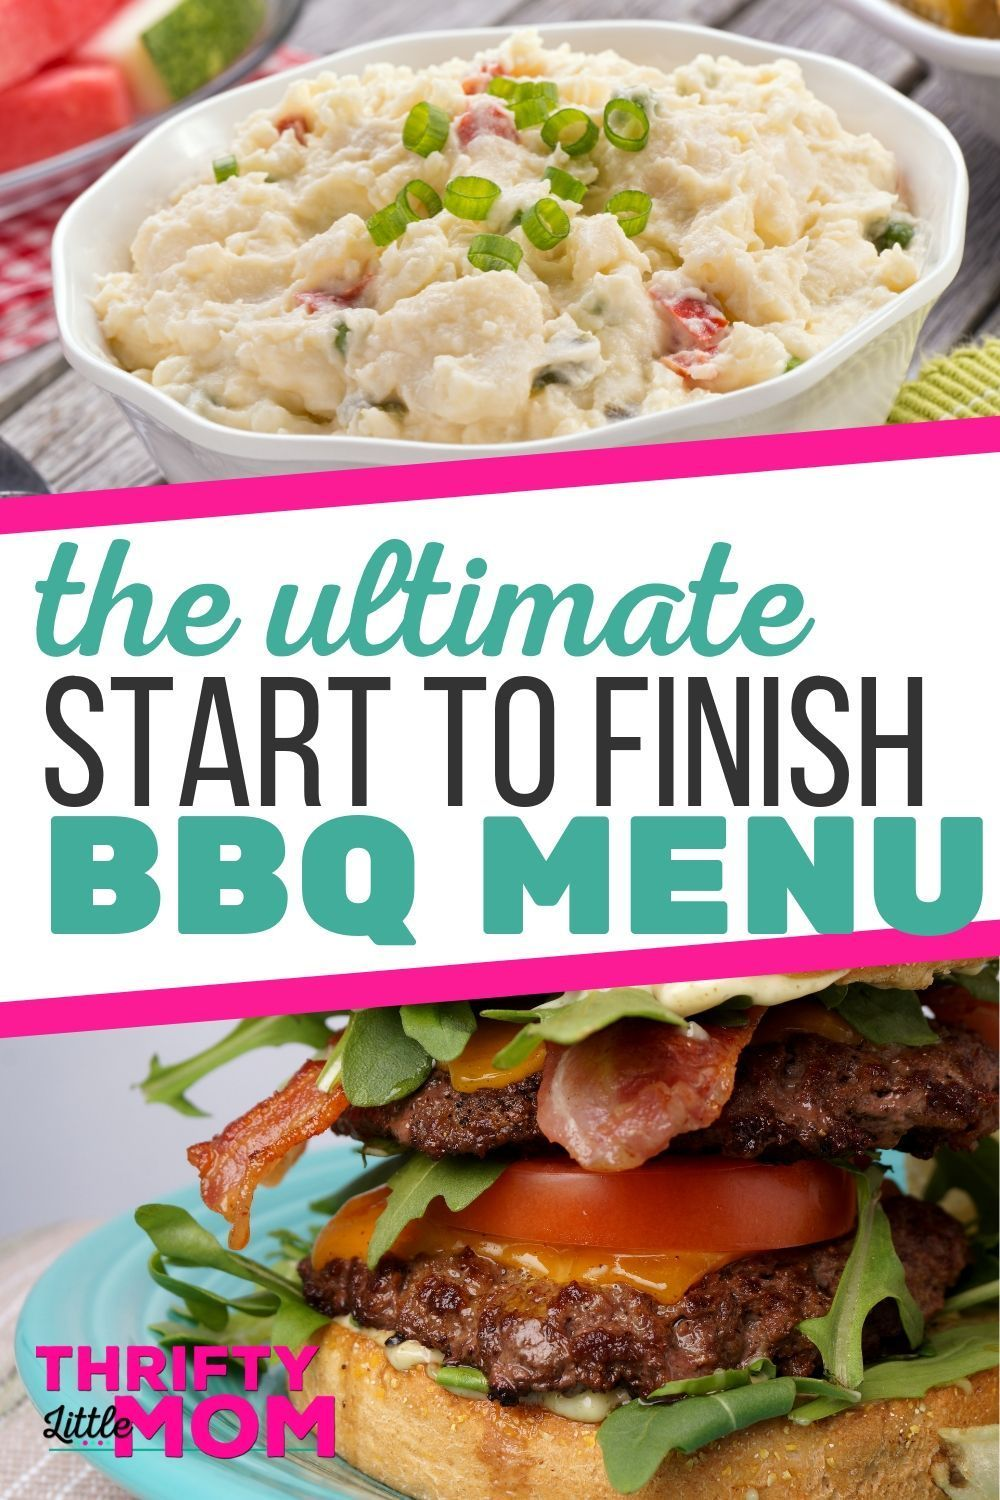 Ultimate Backyard Barbecue Menu From Start To Finish Bbq Recipes